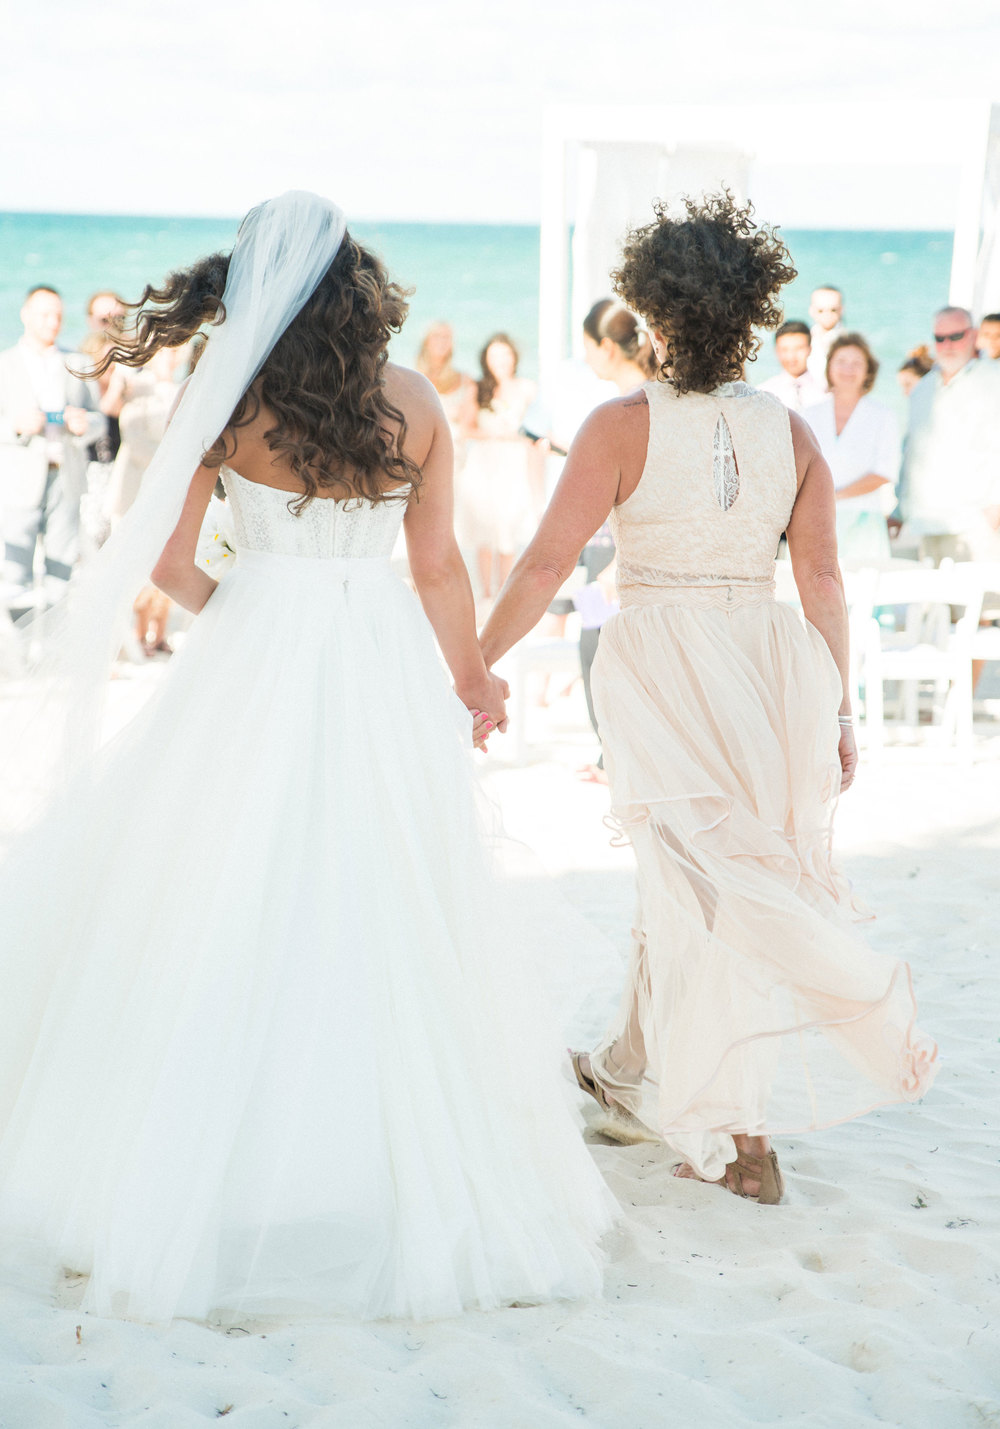 Beach wedding, Mom walking bride down the aisle, Bridal separates, Watters Ashan skirt.